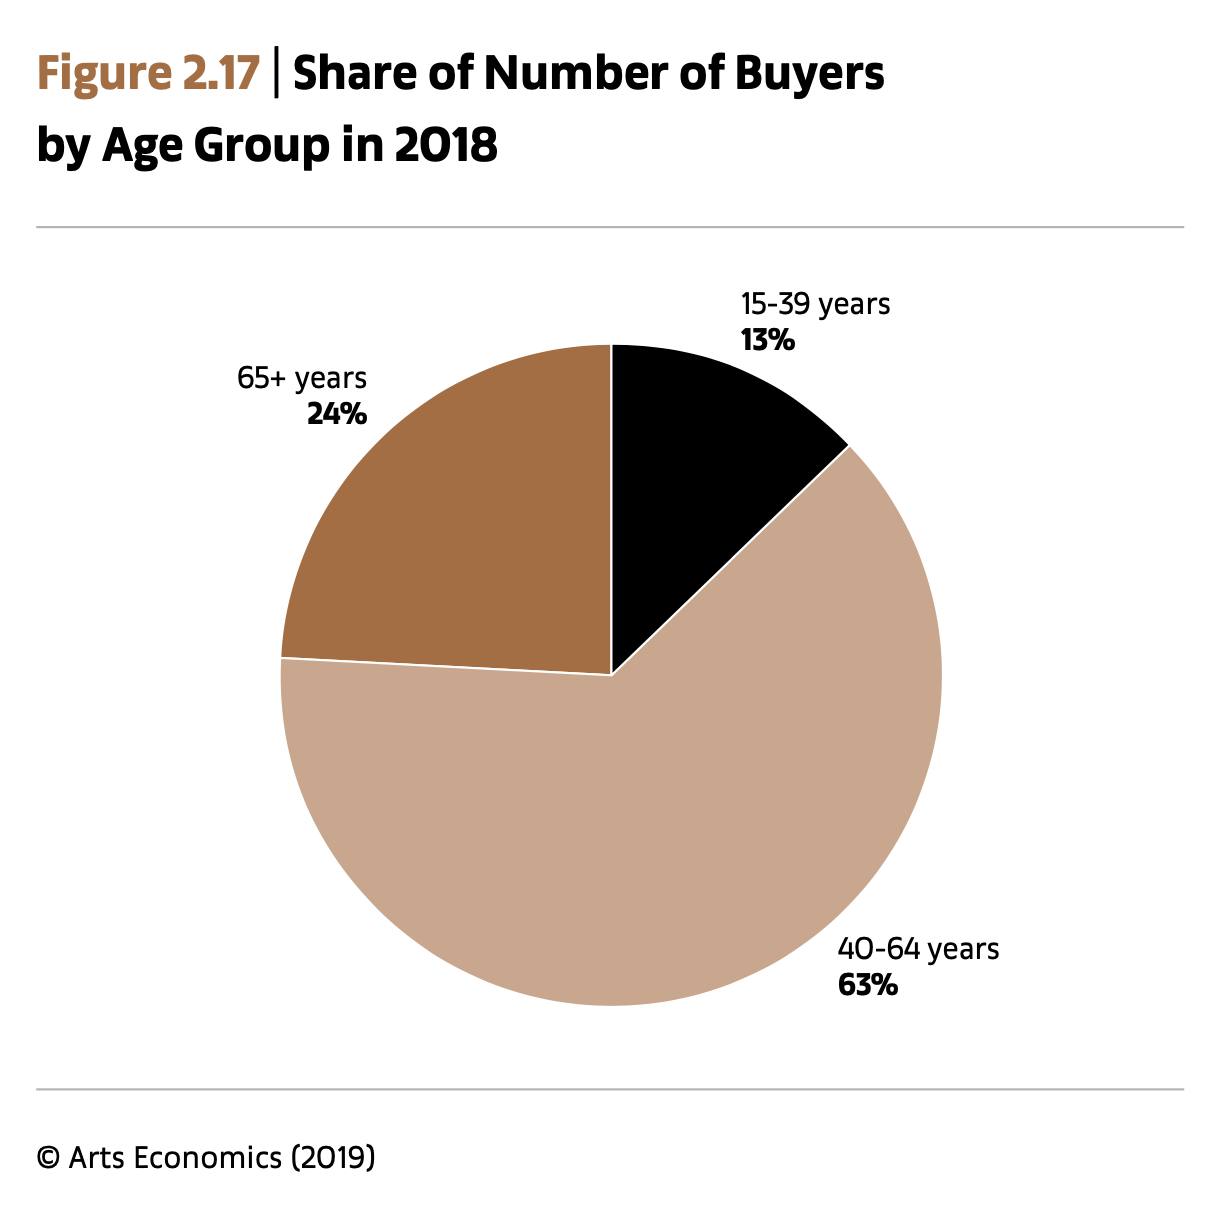 Share of Number of Buyers by Age Group in 2018, Art Basel UBS Art Market Report 2019